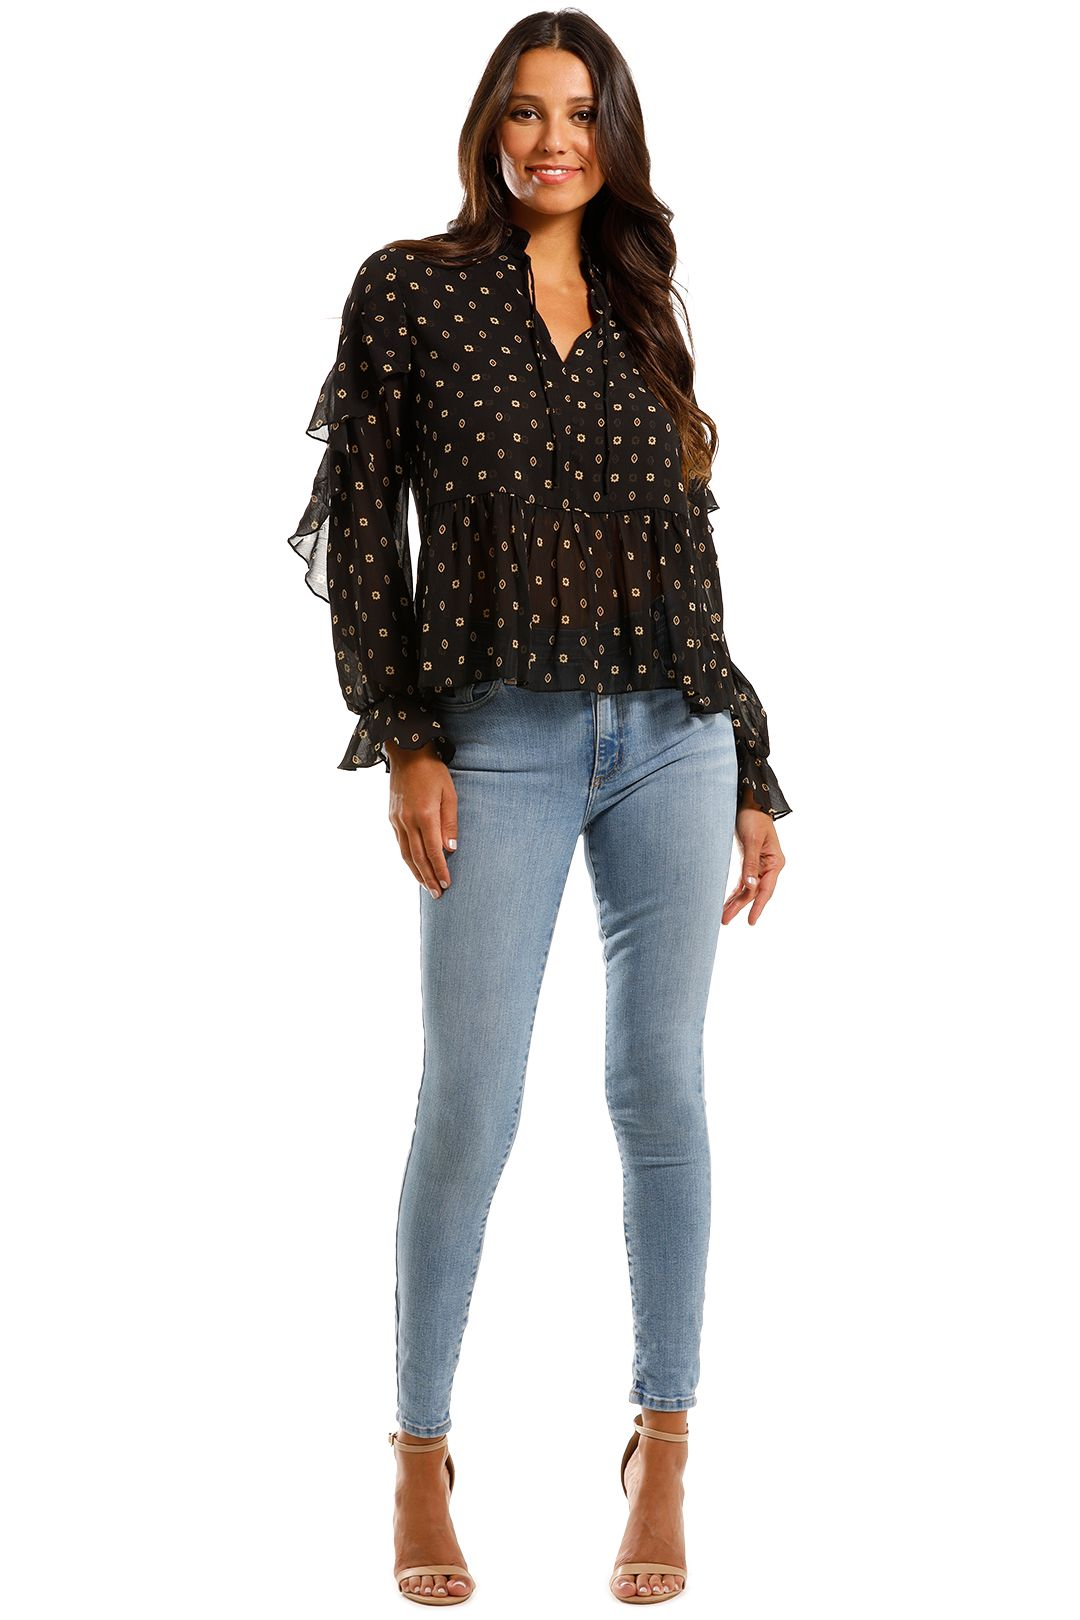 Scotch & Soda Sheer Printed Top With Ruffles Sheer Sleeves